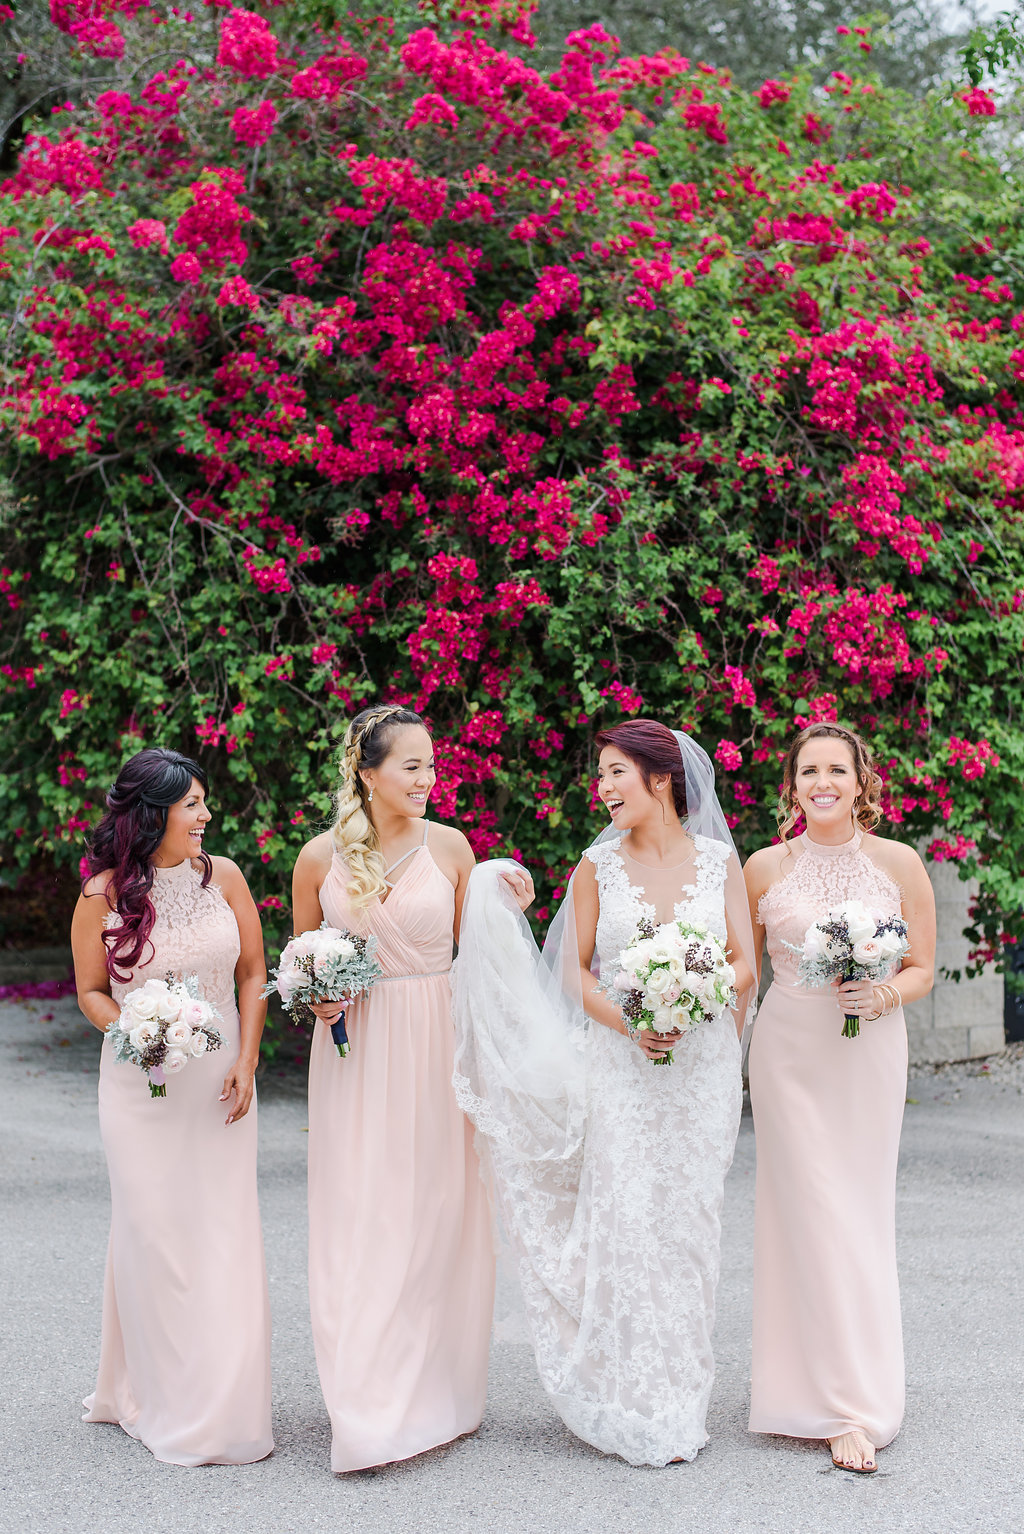 Bridesmaids wore blush chiffon dresses with lace accents.